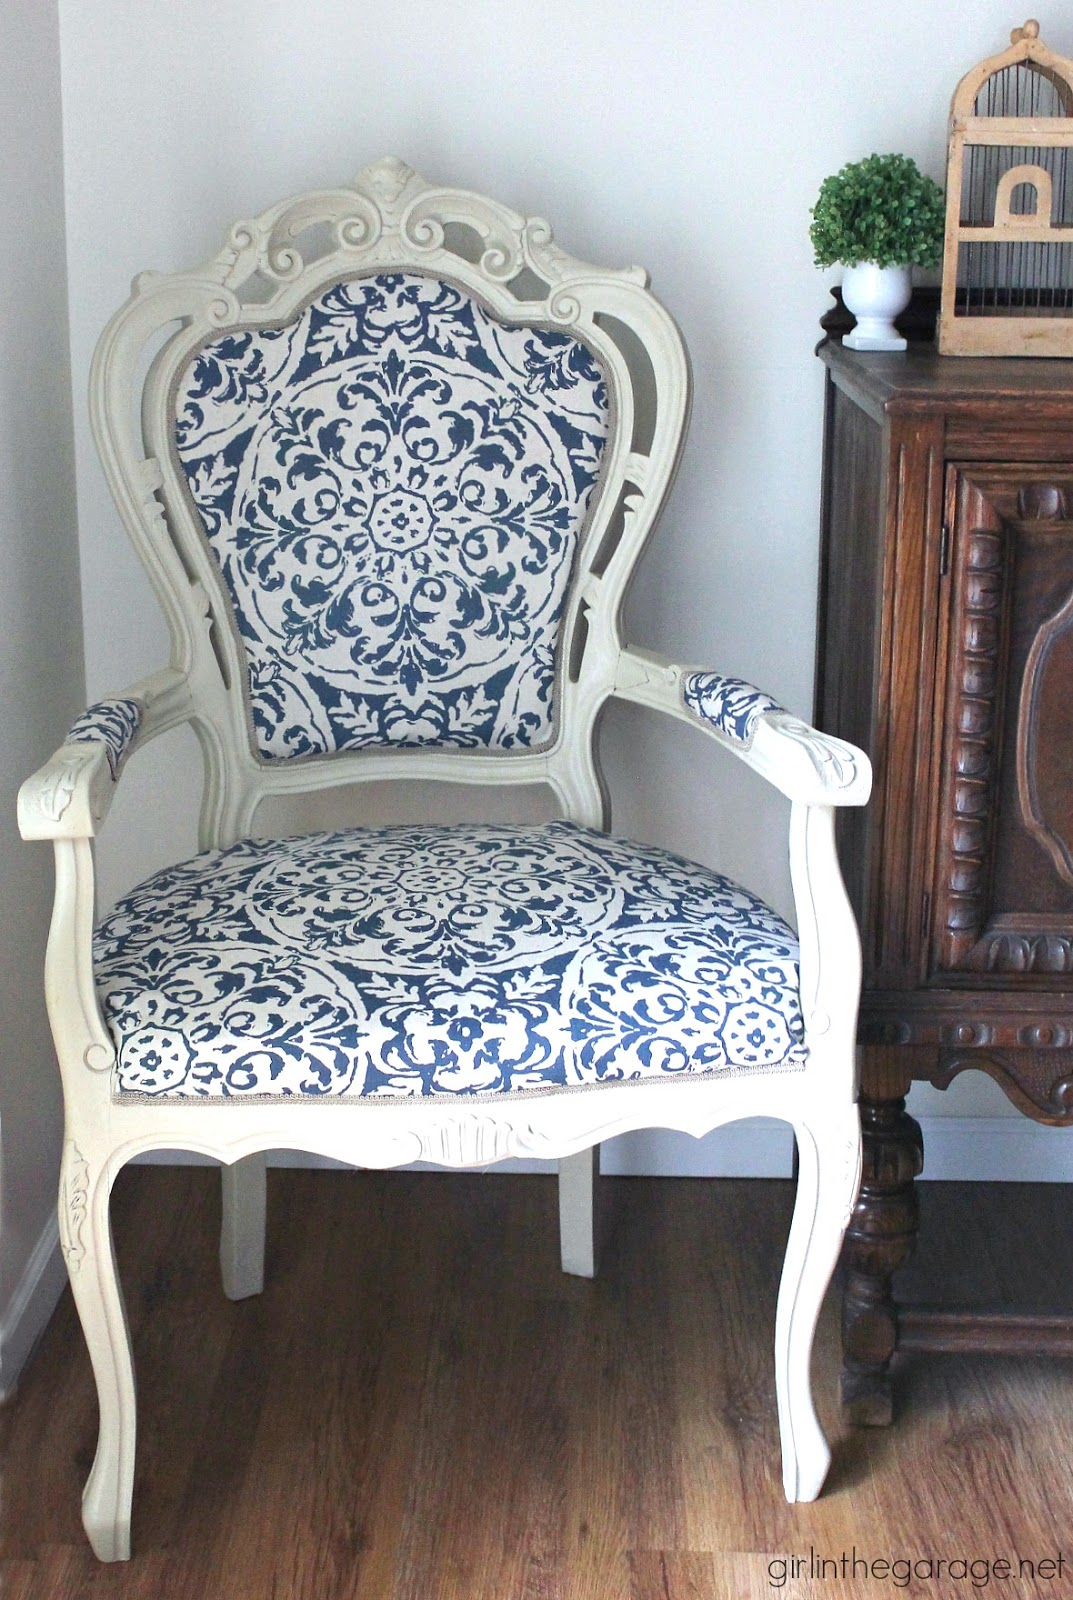 reupholstered chair, painted chair, chair makeover, refinished chair, furniture refinishing advice, how to refinish a chair